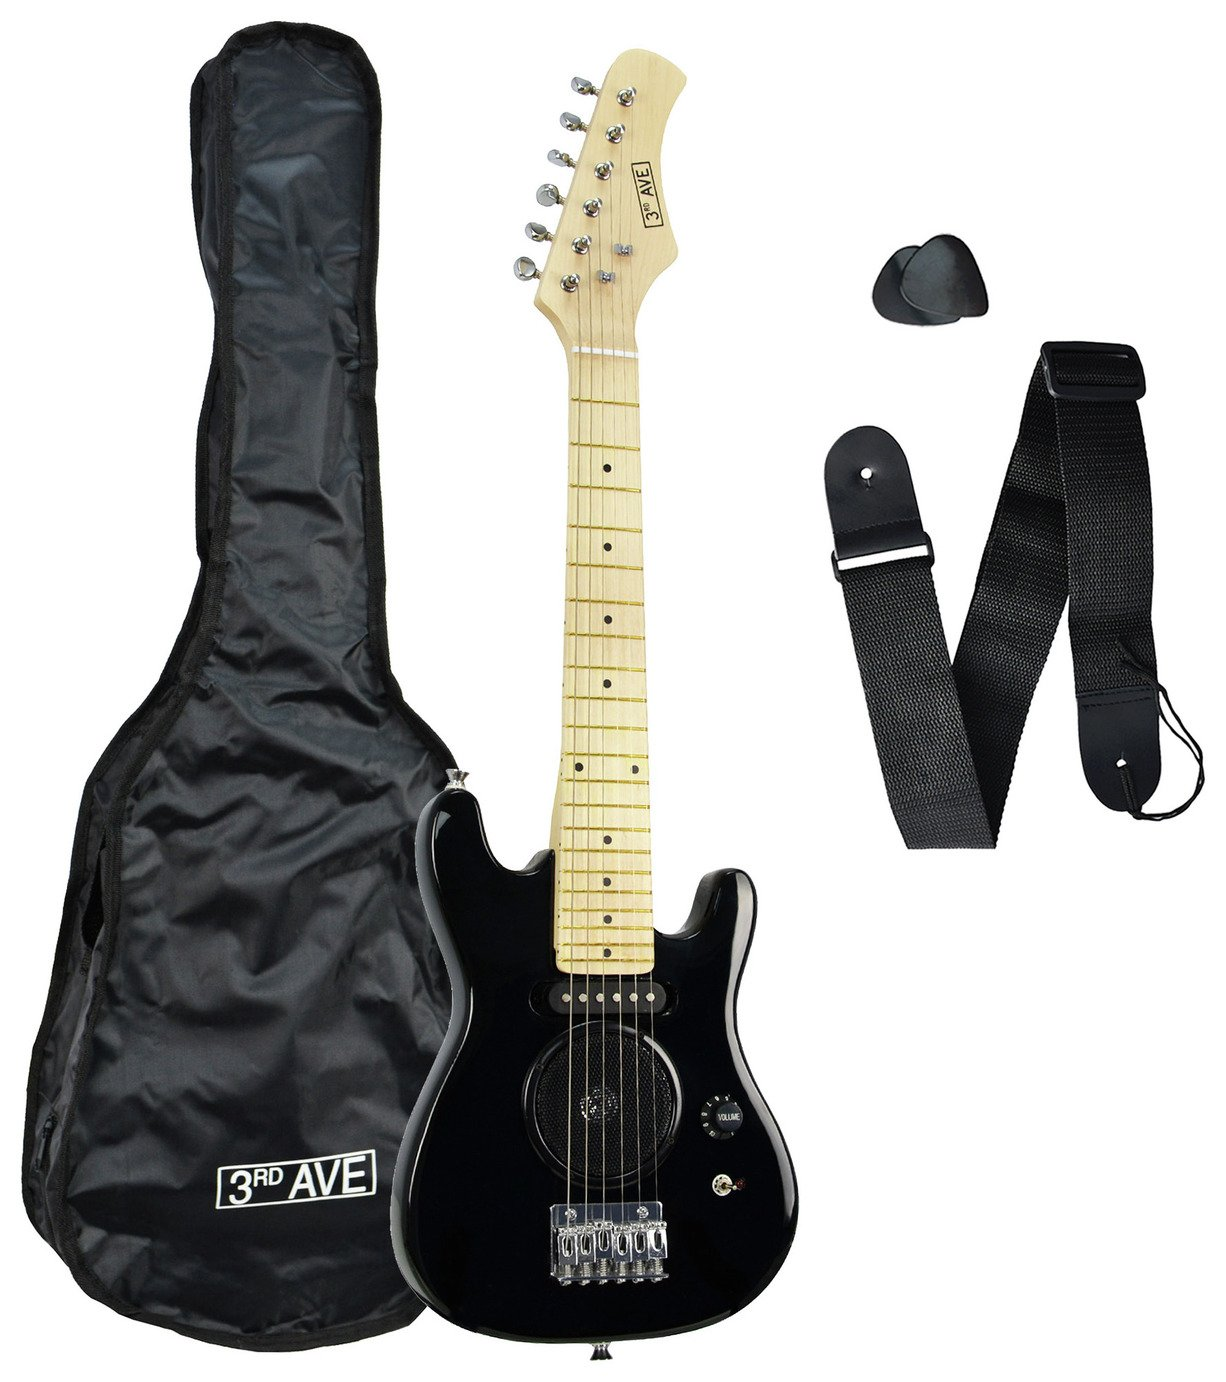 3rd Avenue 1/4 Size Junior Electric Guitar - Black